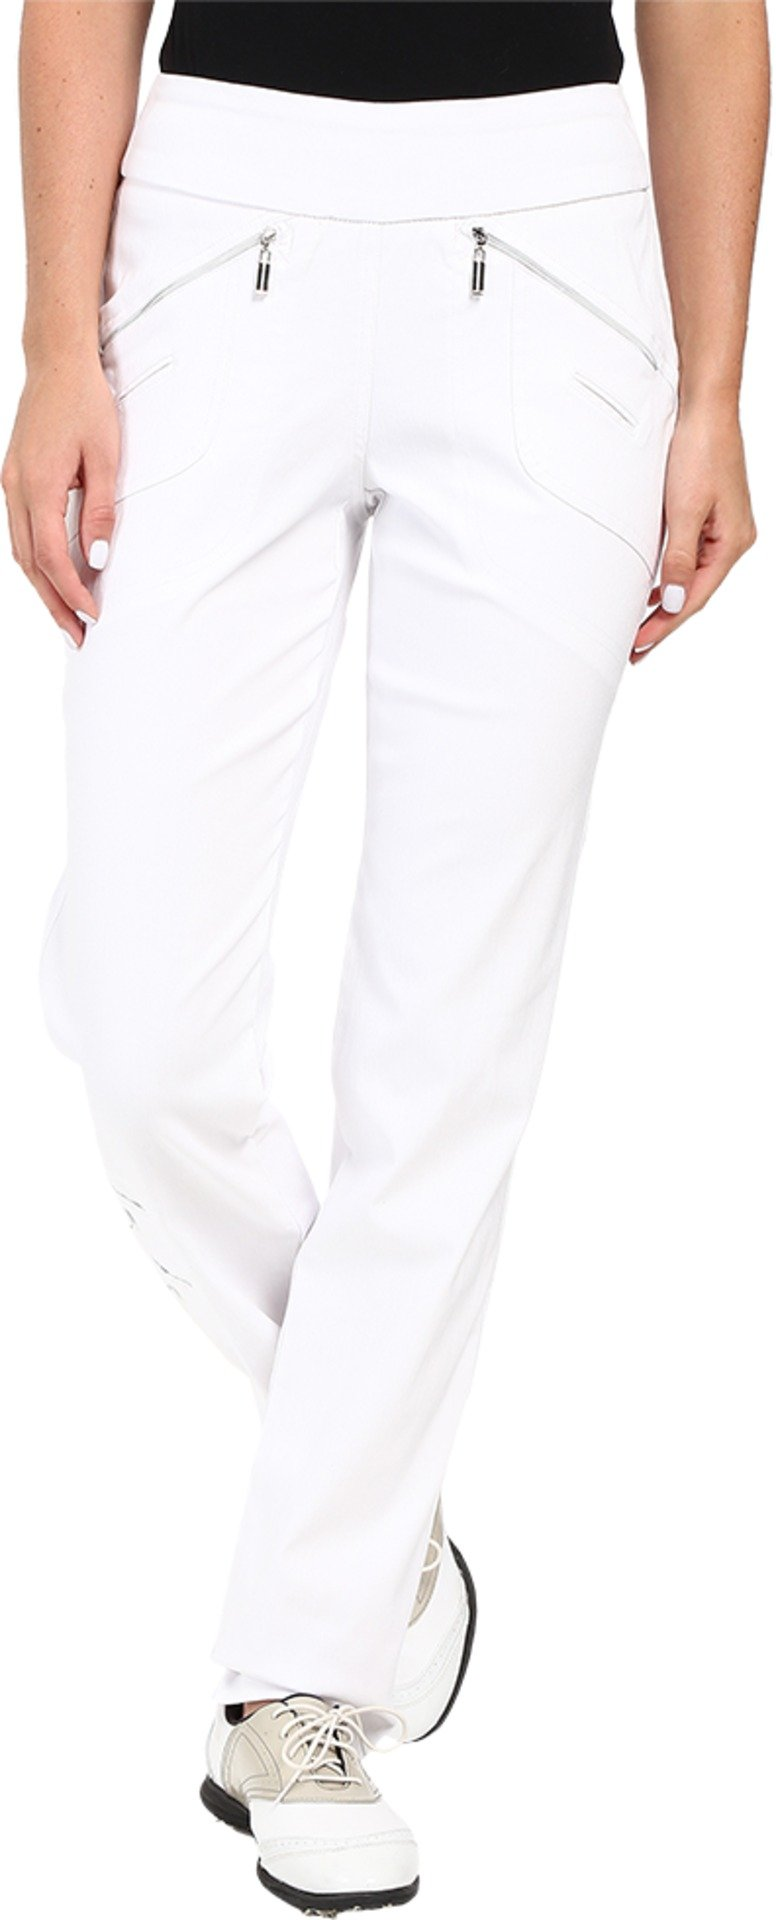 Jamie Sadock Women's Skinnylicious 41.5 in. Pant with Control Top Mesh Panel Pure White Pants 14 X 32